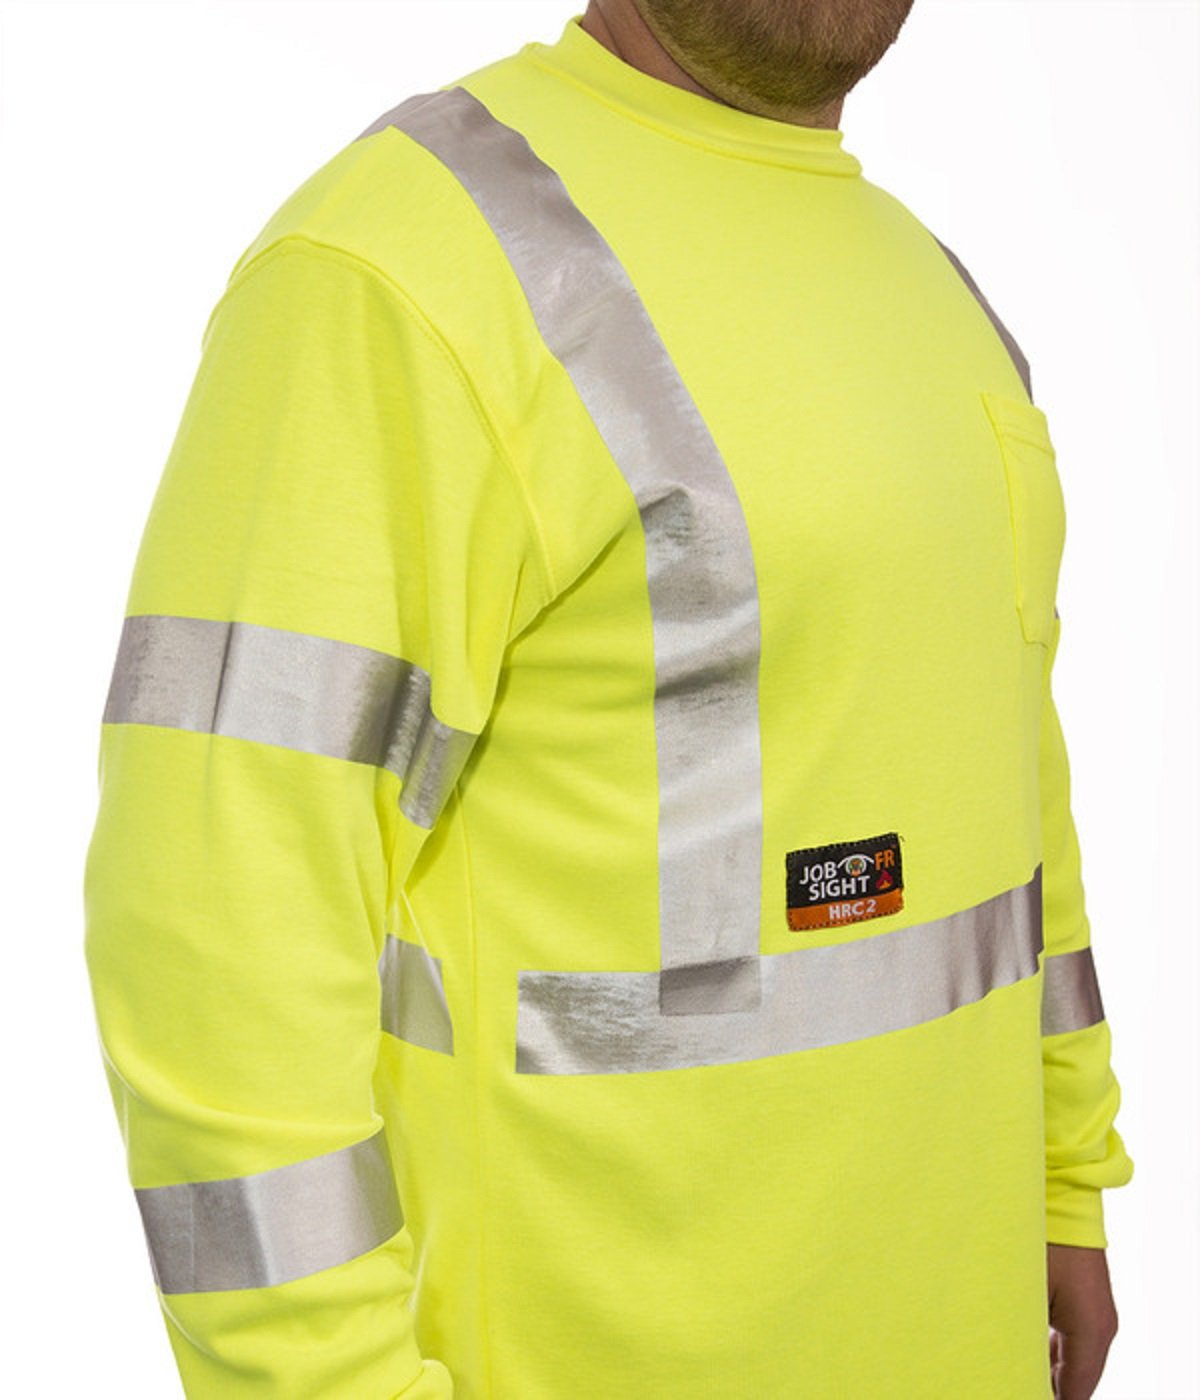 JOB SIGHT FR S85522.XL Class 3 Flame Resistant Long Sleeve T-Shirt with 1 Pocket and Silver Reflective Tape X-Large Dummy Code for Tools Fluorescent Yellow//Green Trumbull Industries